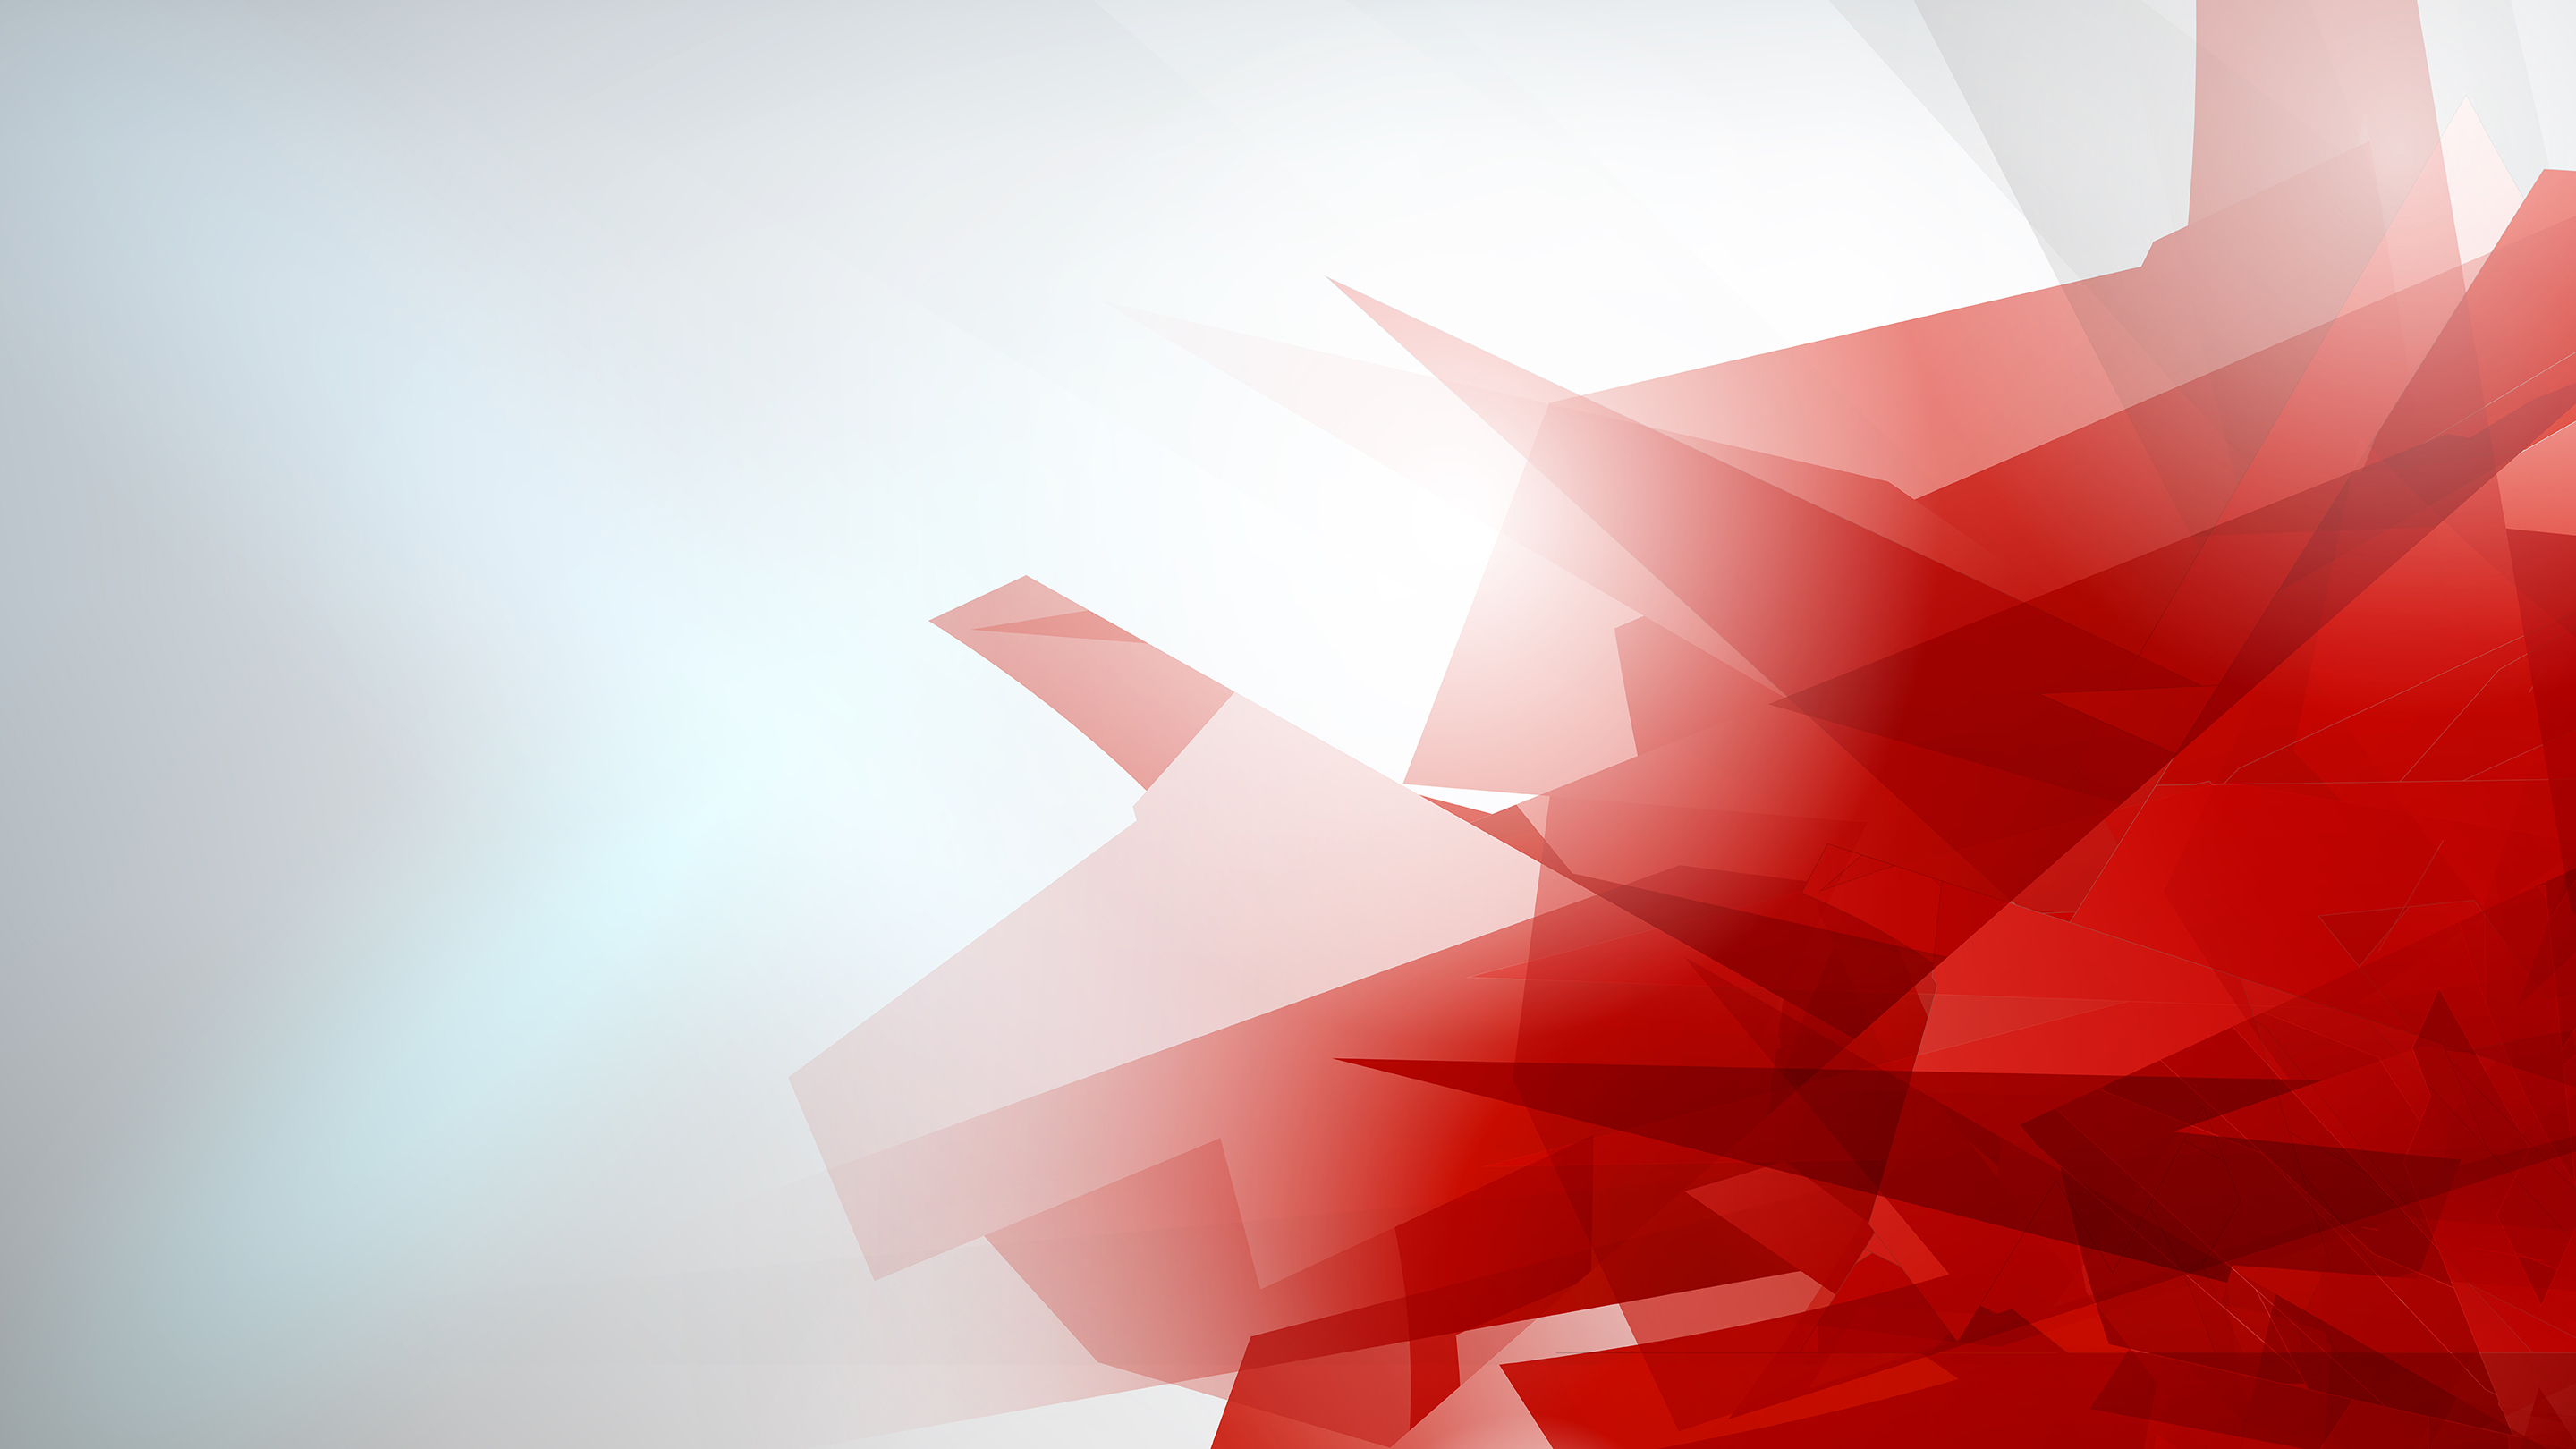 Red Wallpapers 40 2880x1620